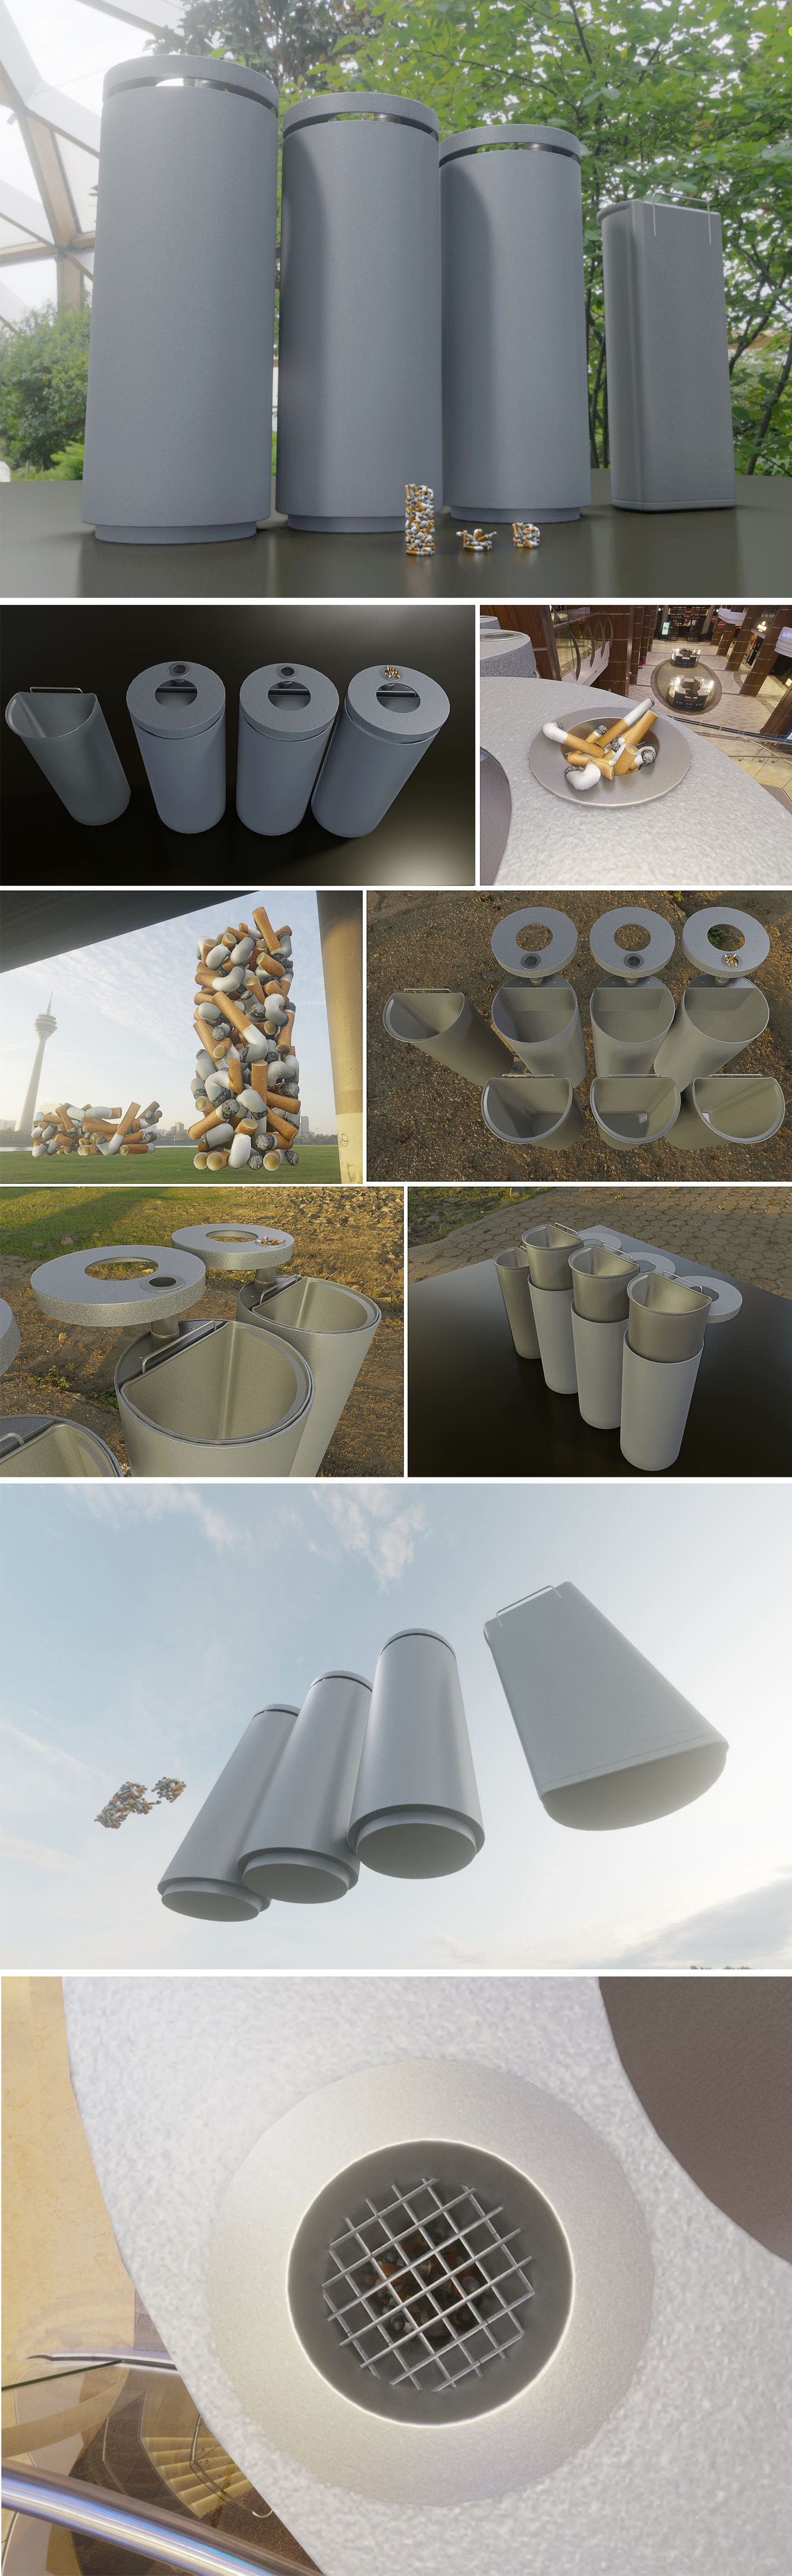 Animated Urban Trash Bin with and without Ashtray and Cigarette Butts